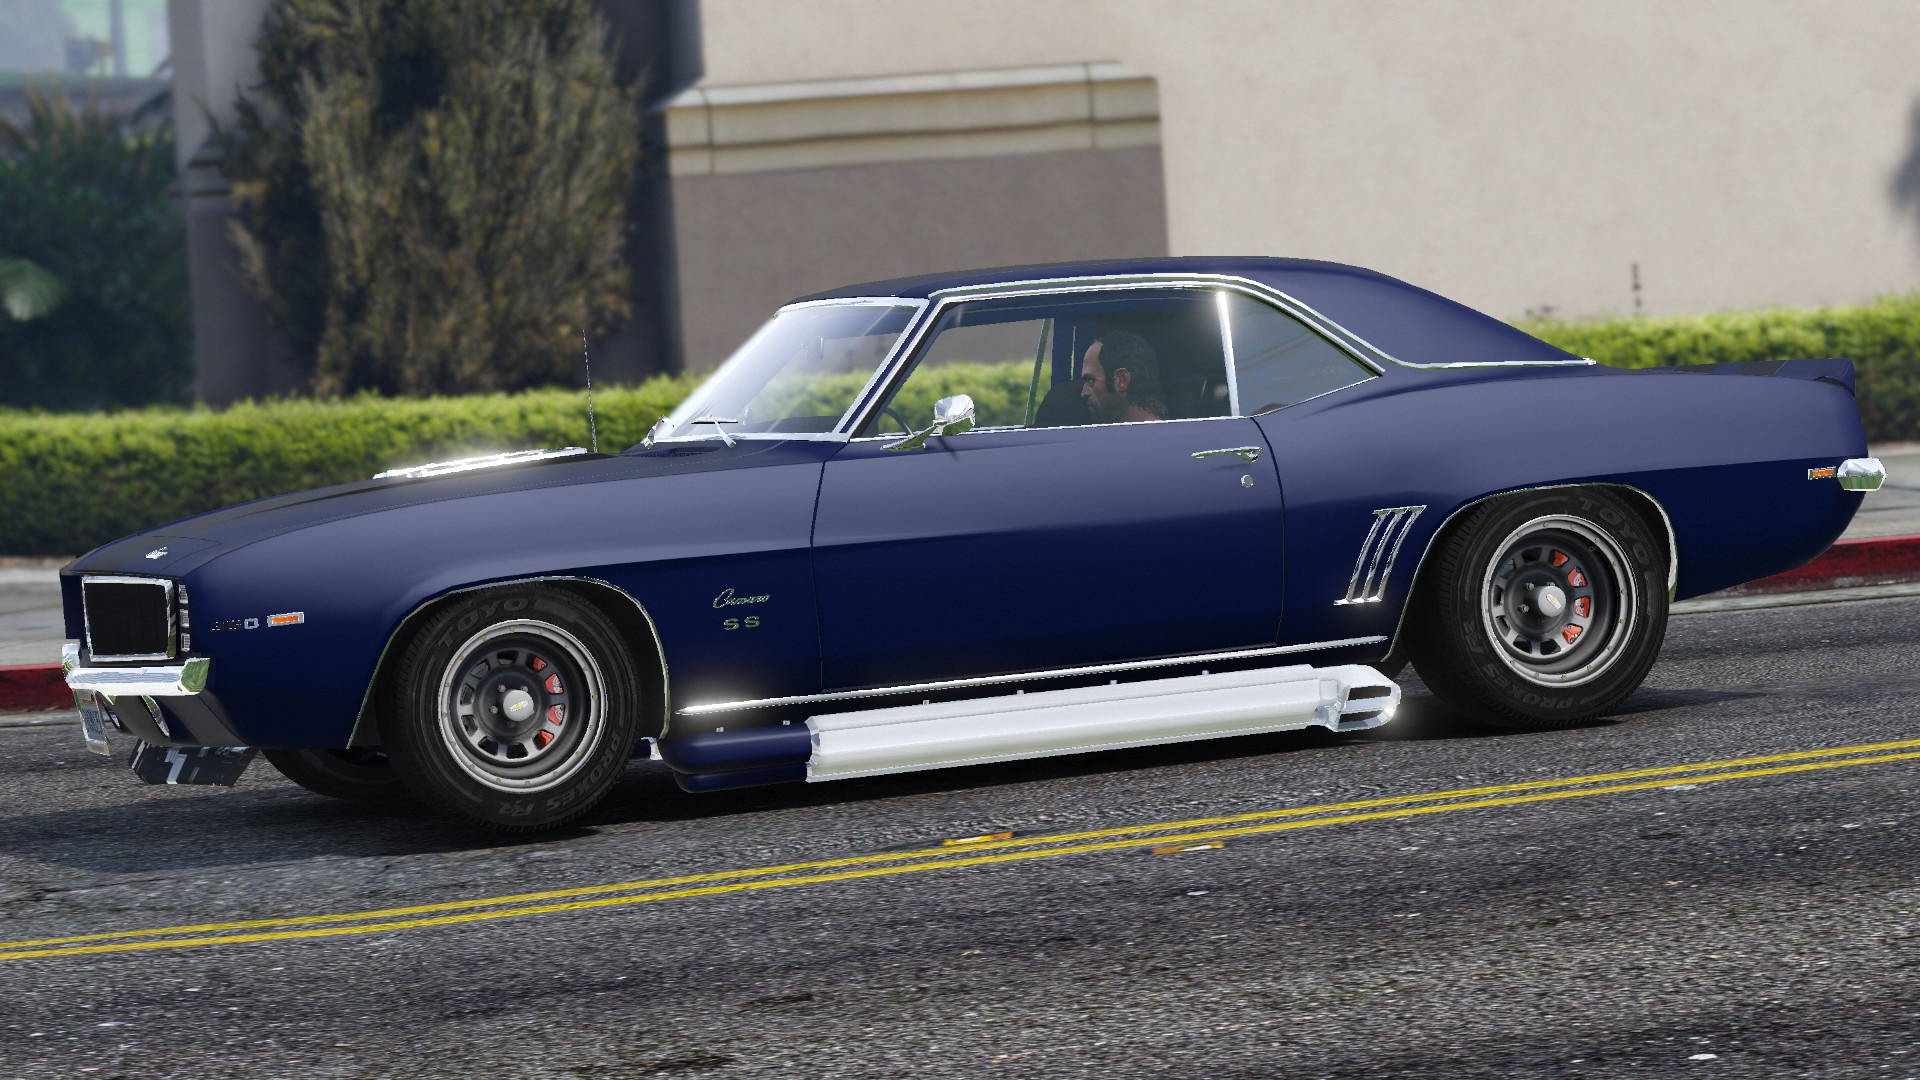 Camaro Ss 1969 Custom >> 1969 Chevrolet Camaro SS [Add-On] - GTA5-Mods.com